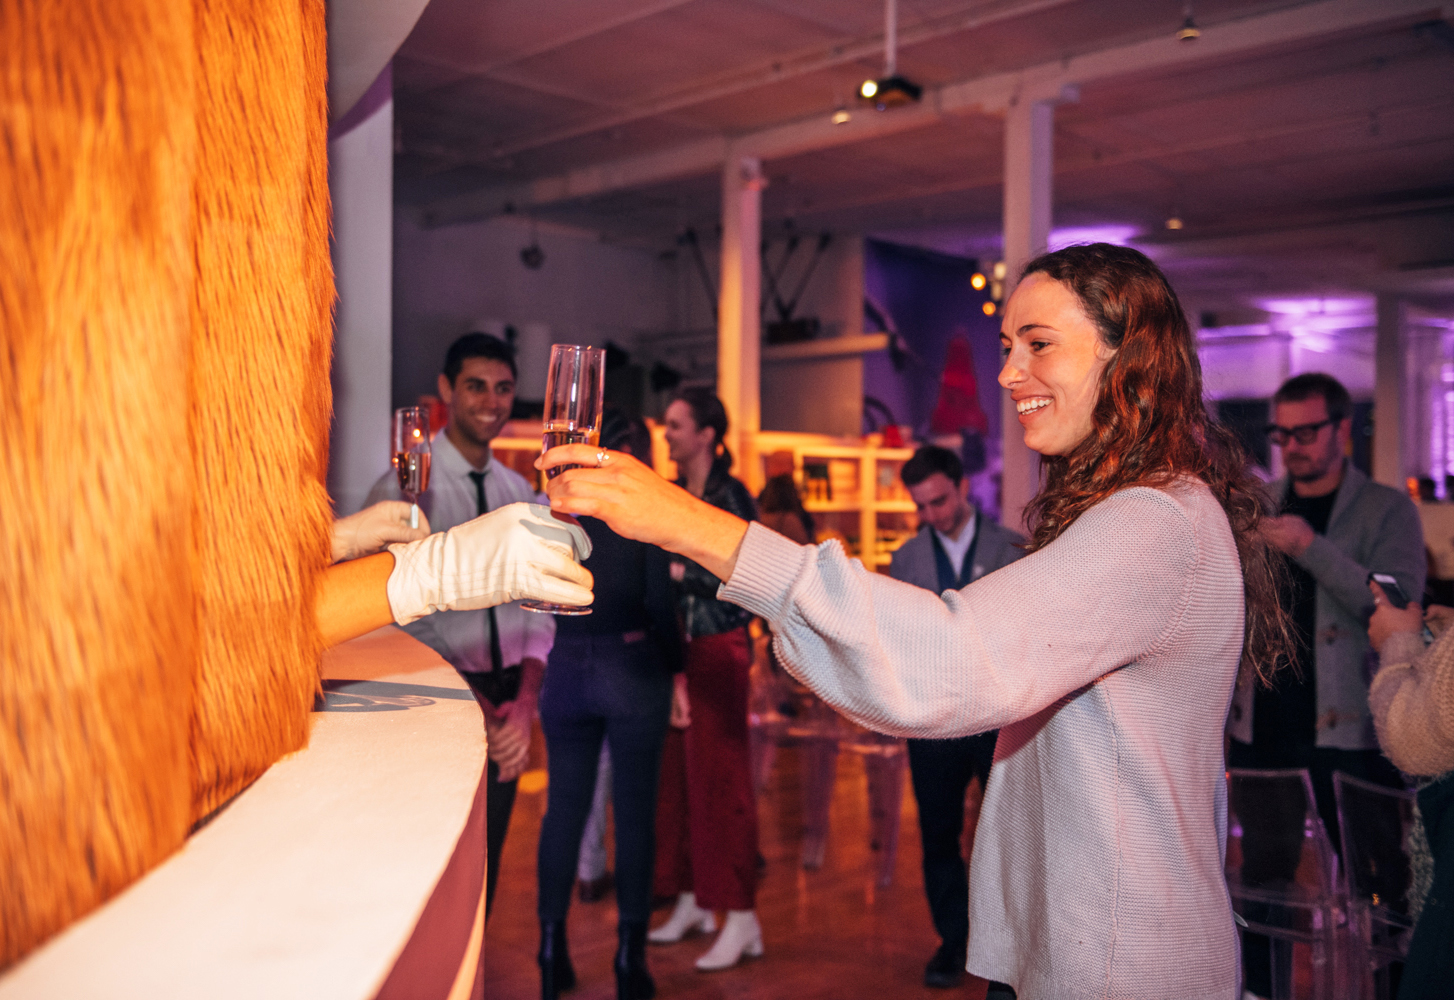 Mystery Bartenders and Floating Dessert: How Klarna Introduced Retailers to its Brand